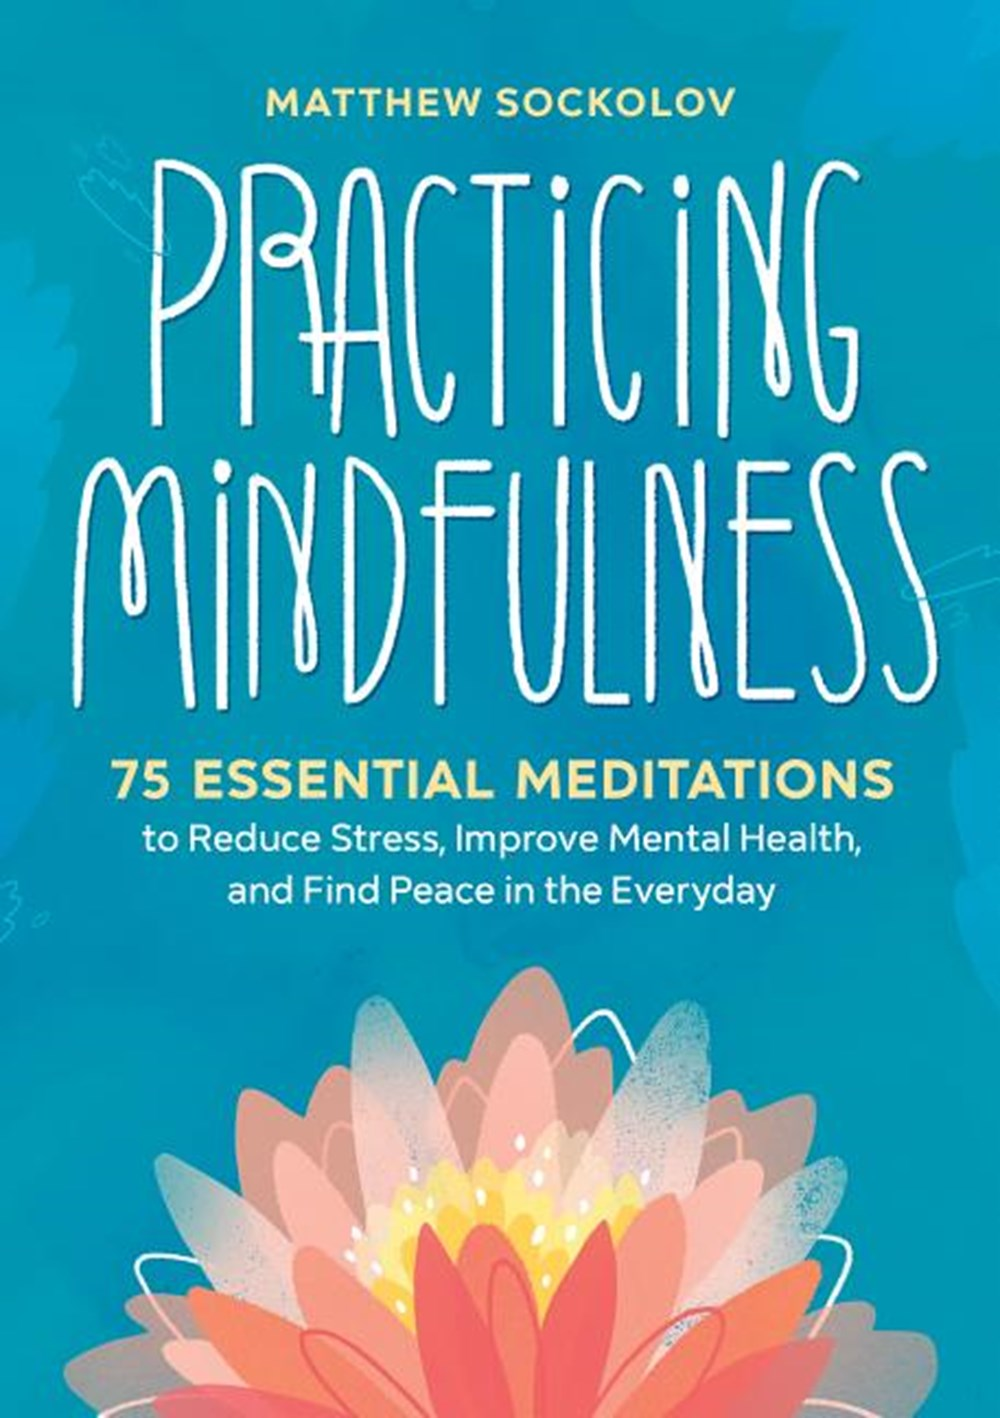 Practicing Mindfulness 75 Essential Meditations to Reduce Stress, Improve Mental Health, and Find Pe